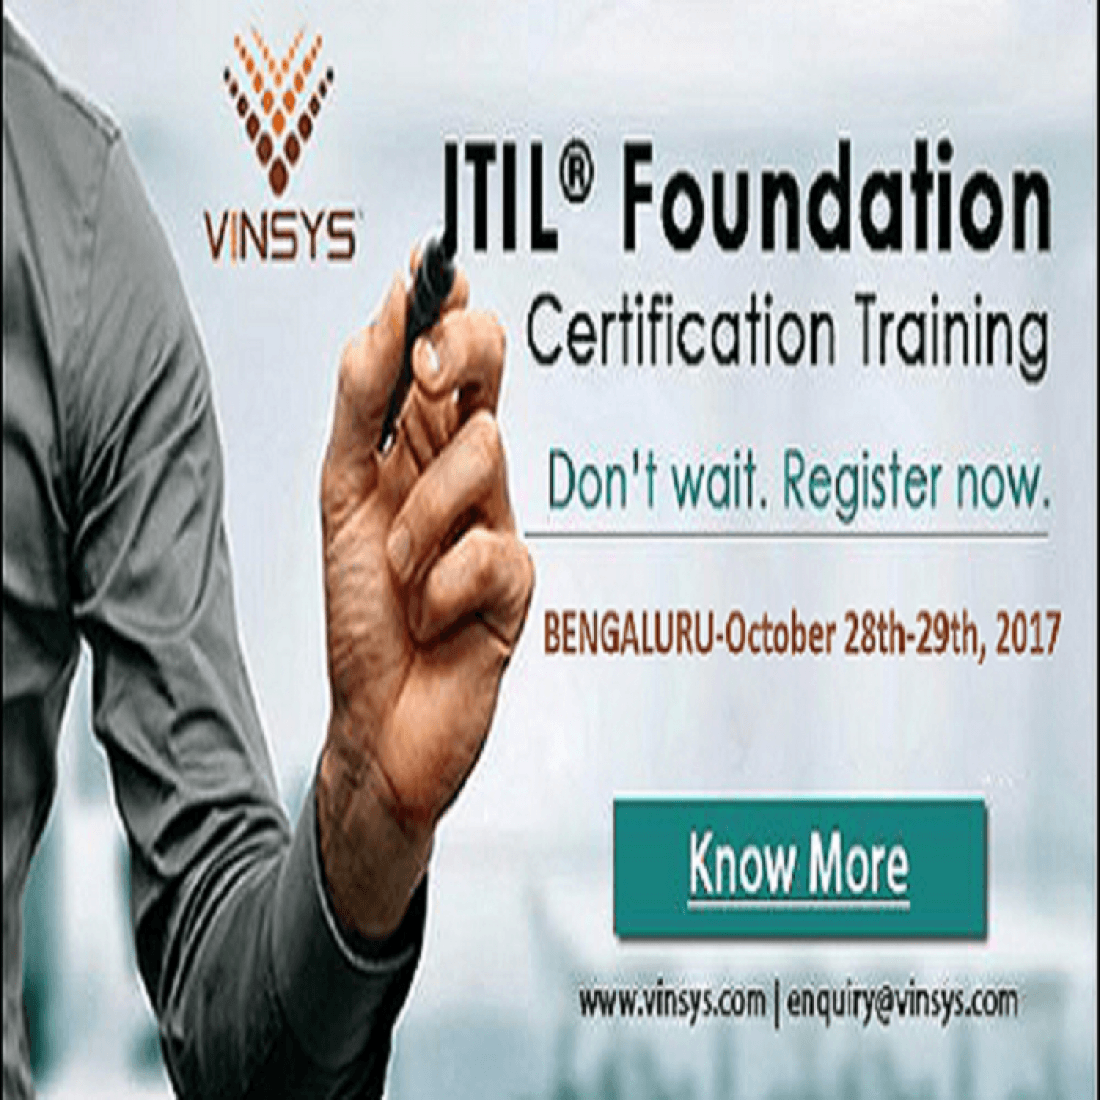 Itil Foundation Certification Training In Bangalore Vinsys At